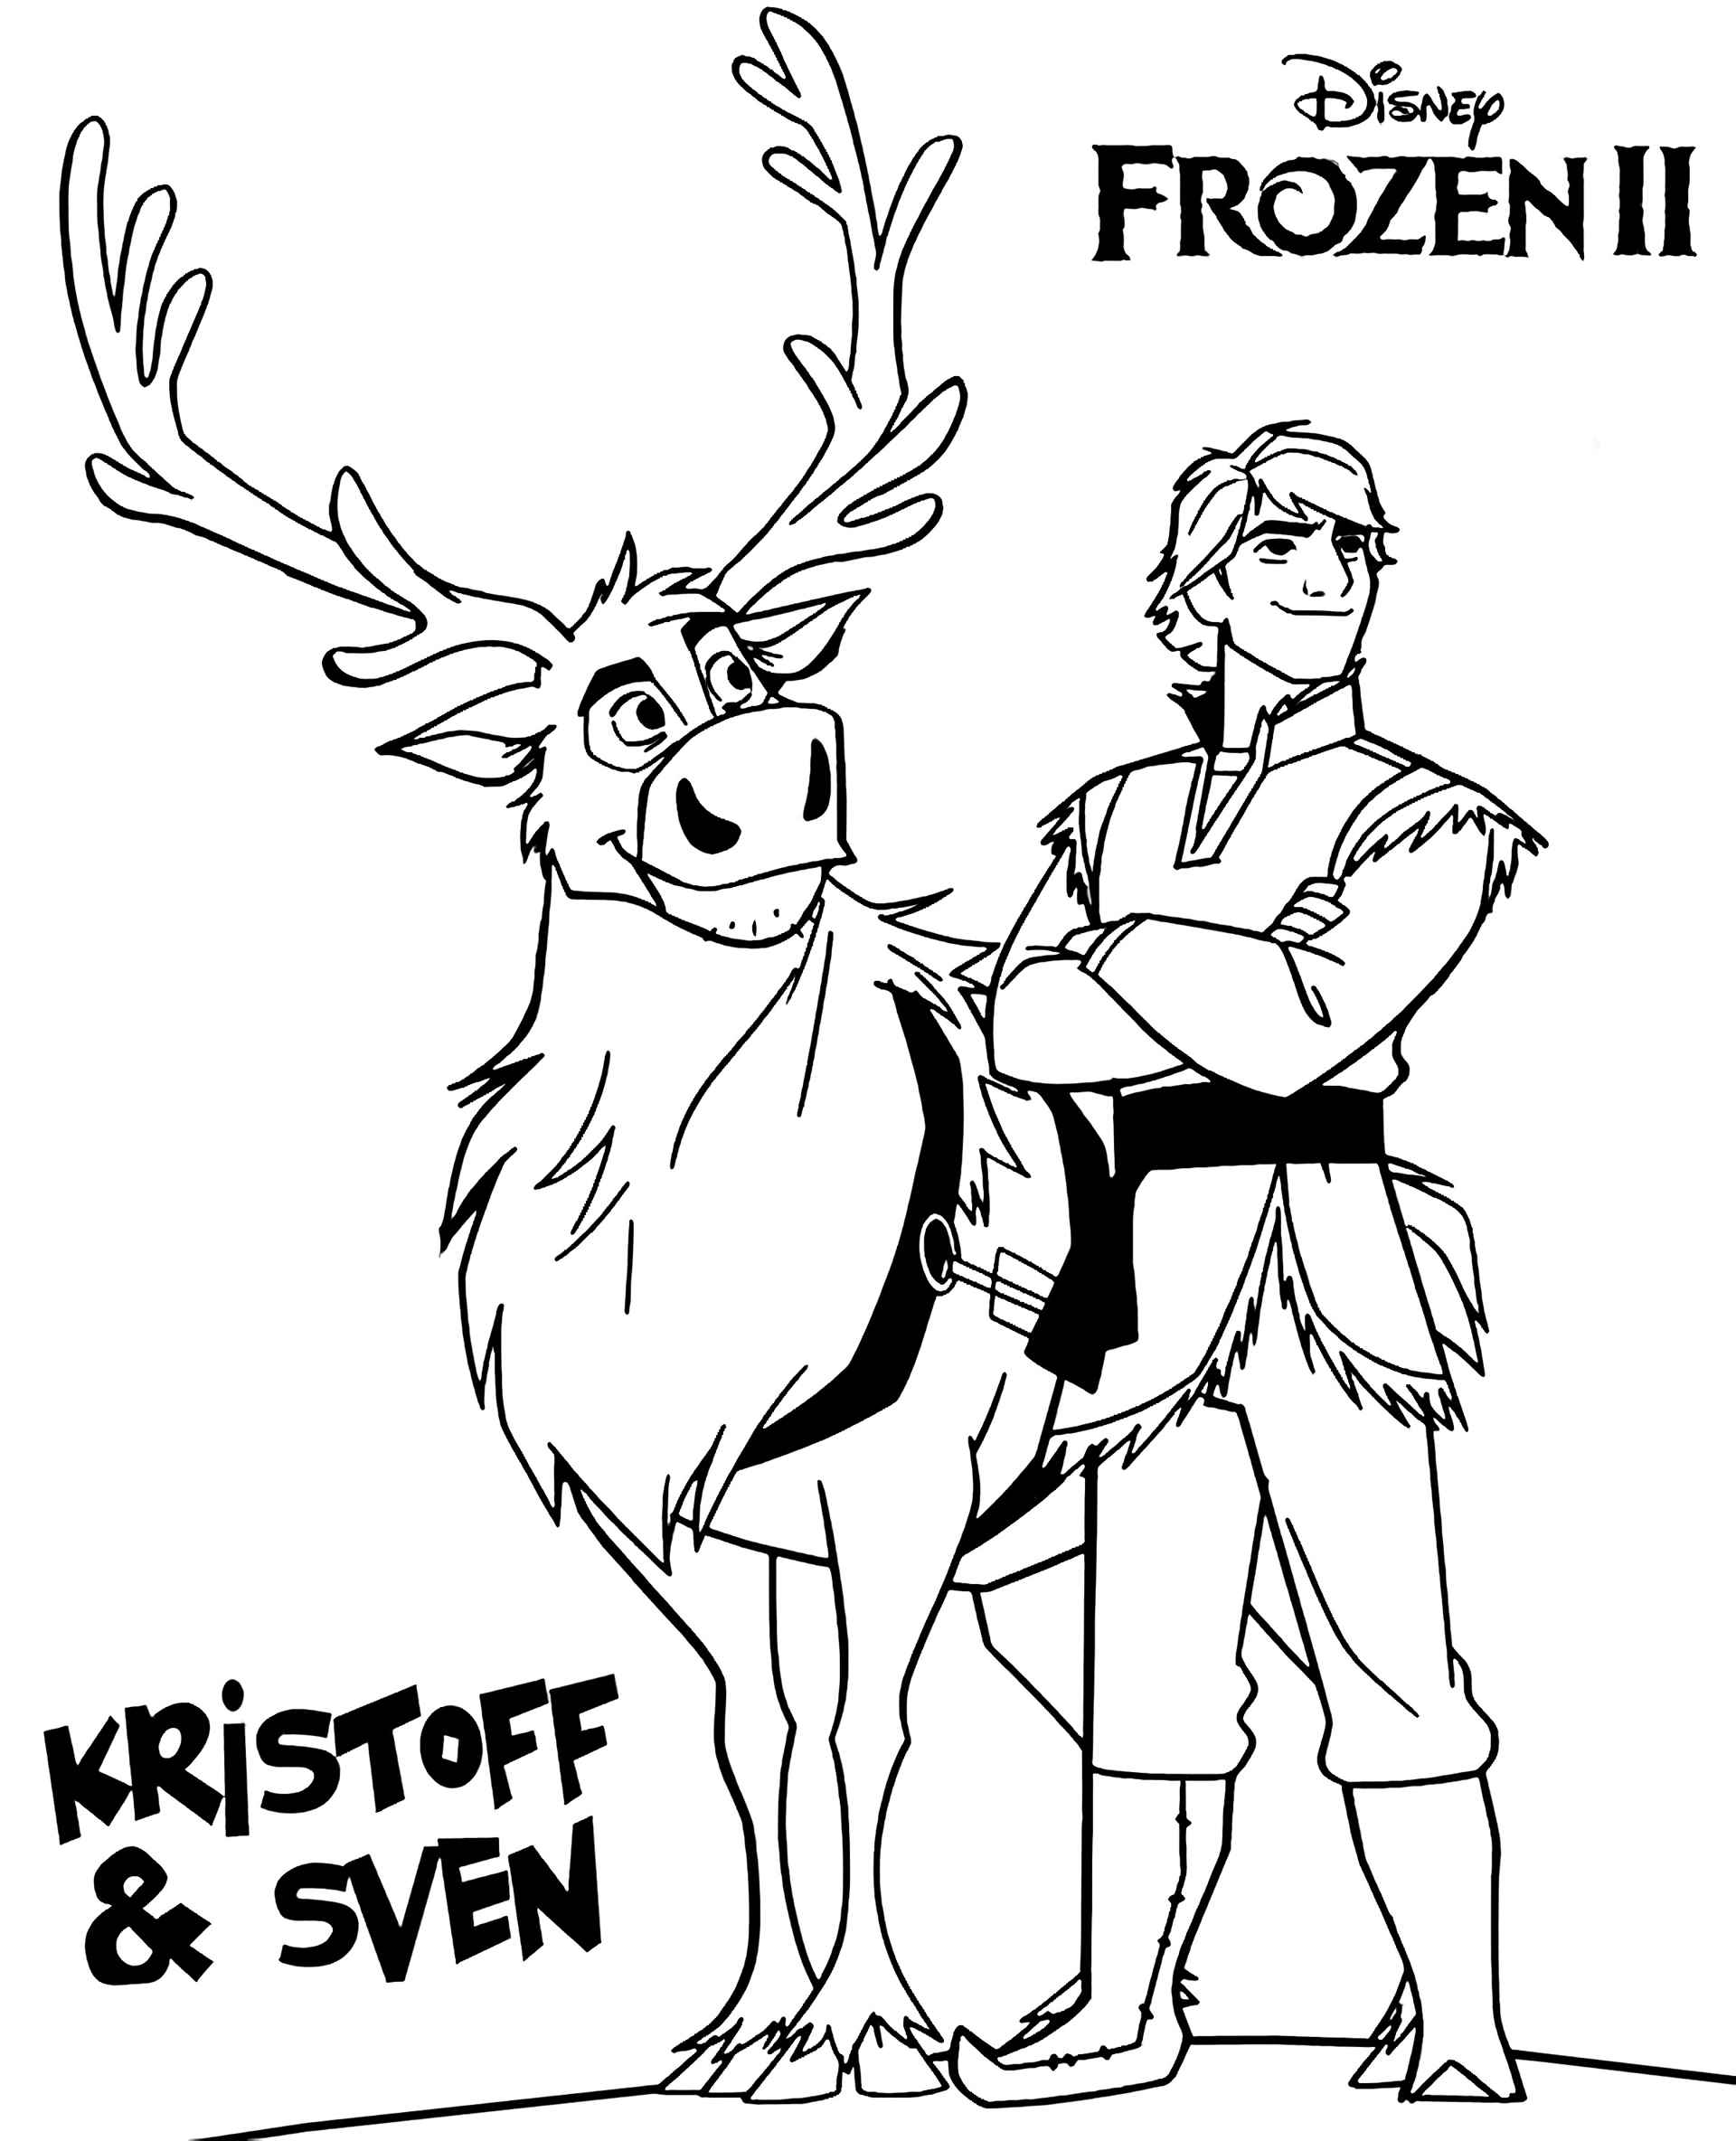 Cool Kristoff And Sven Coloring Page